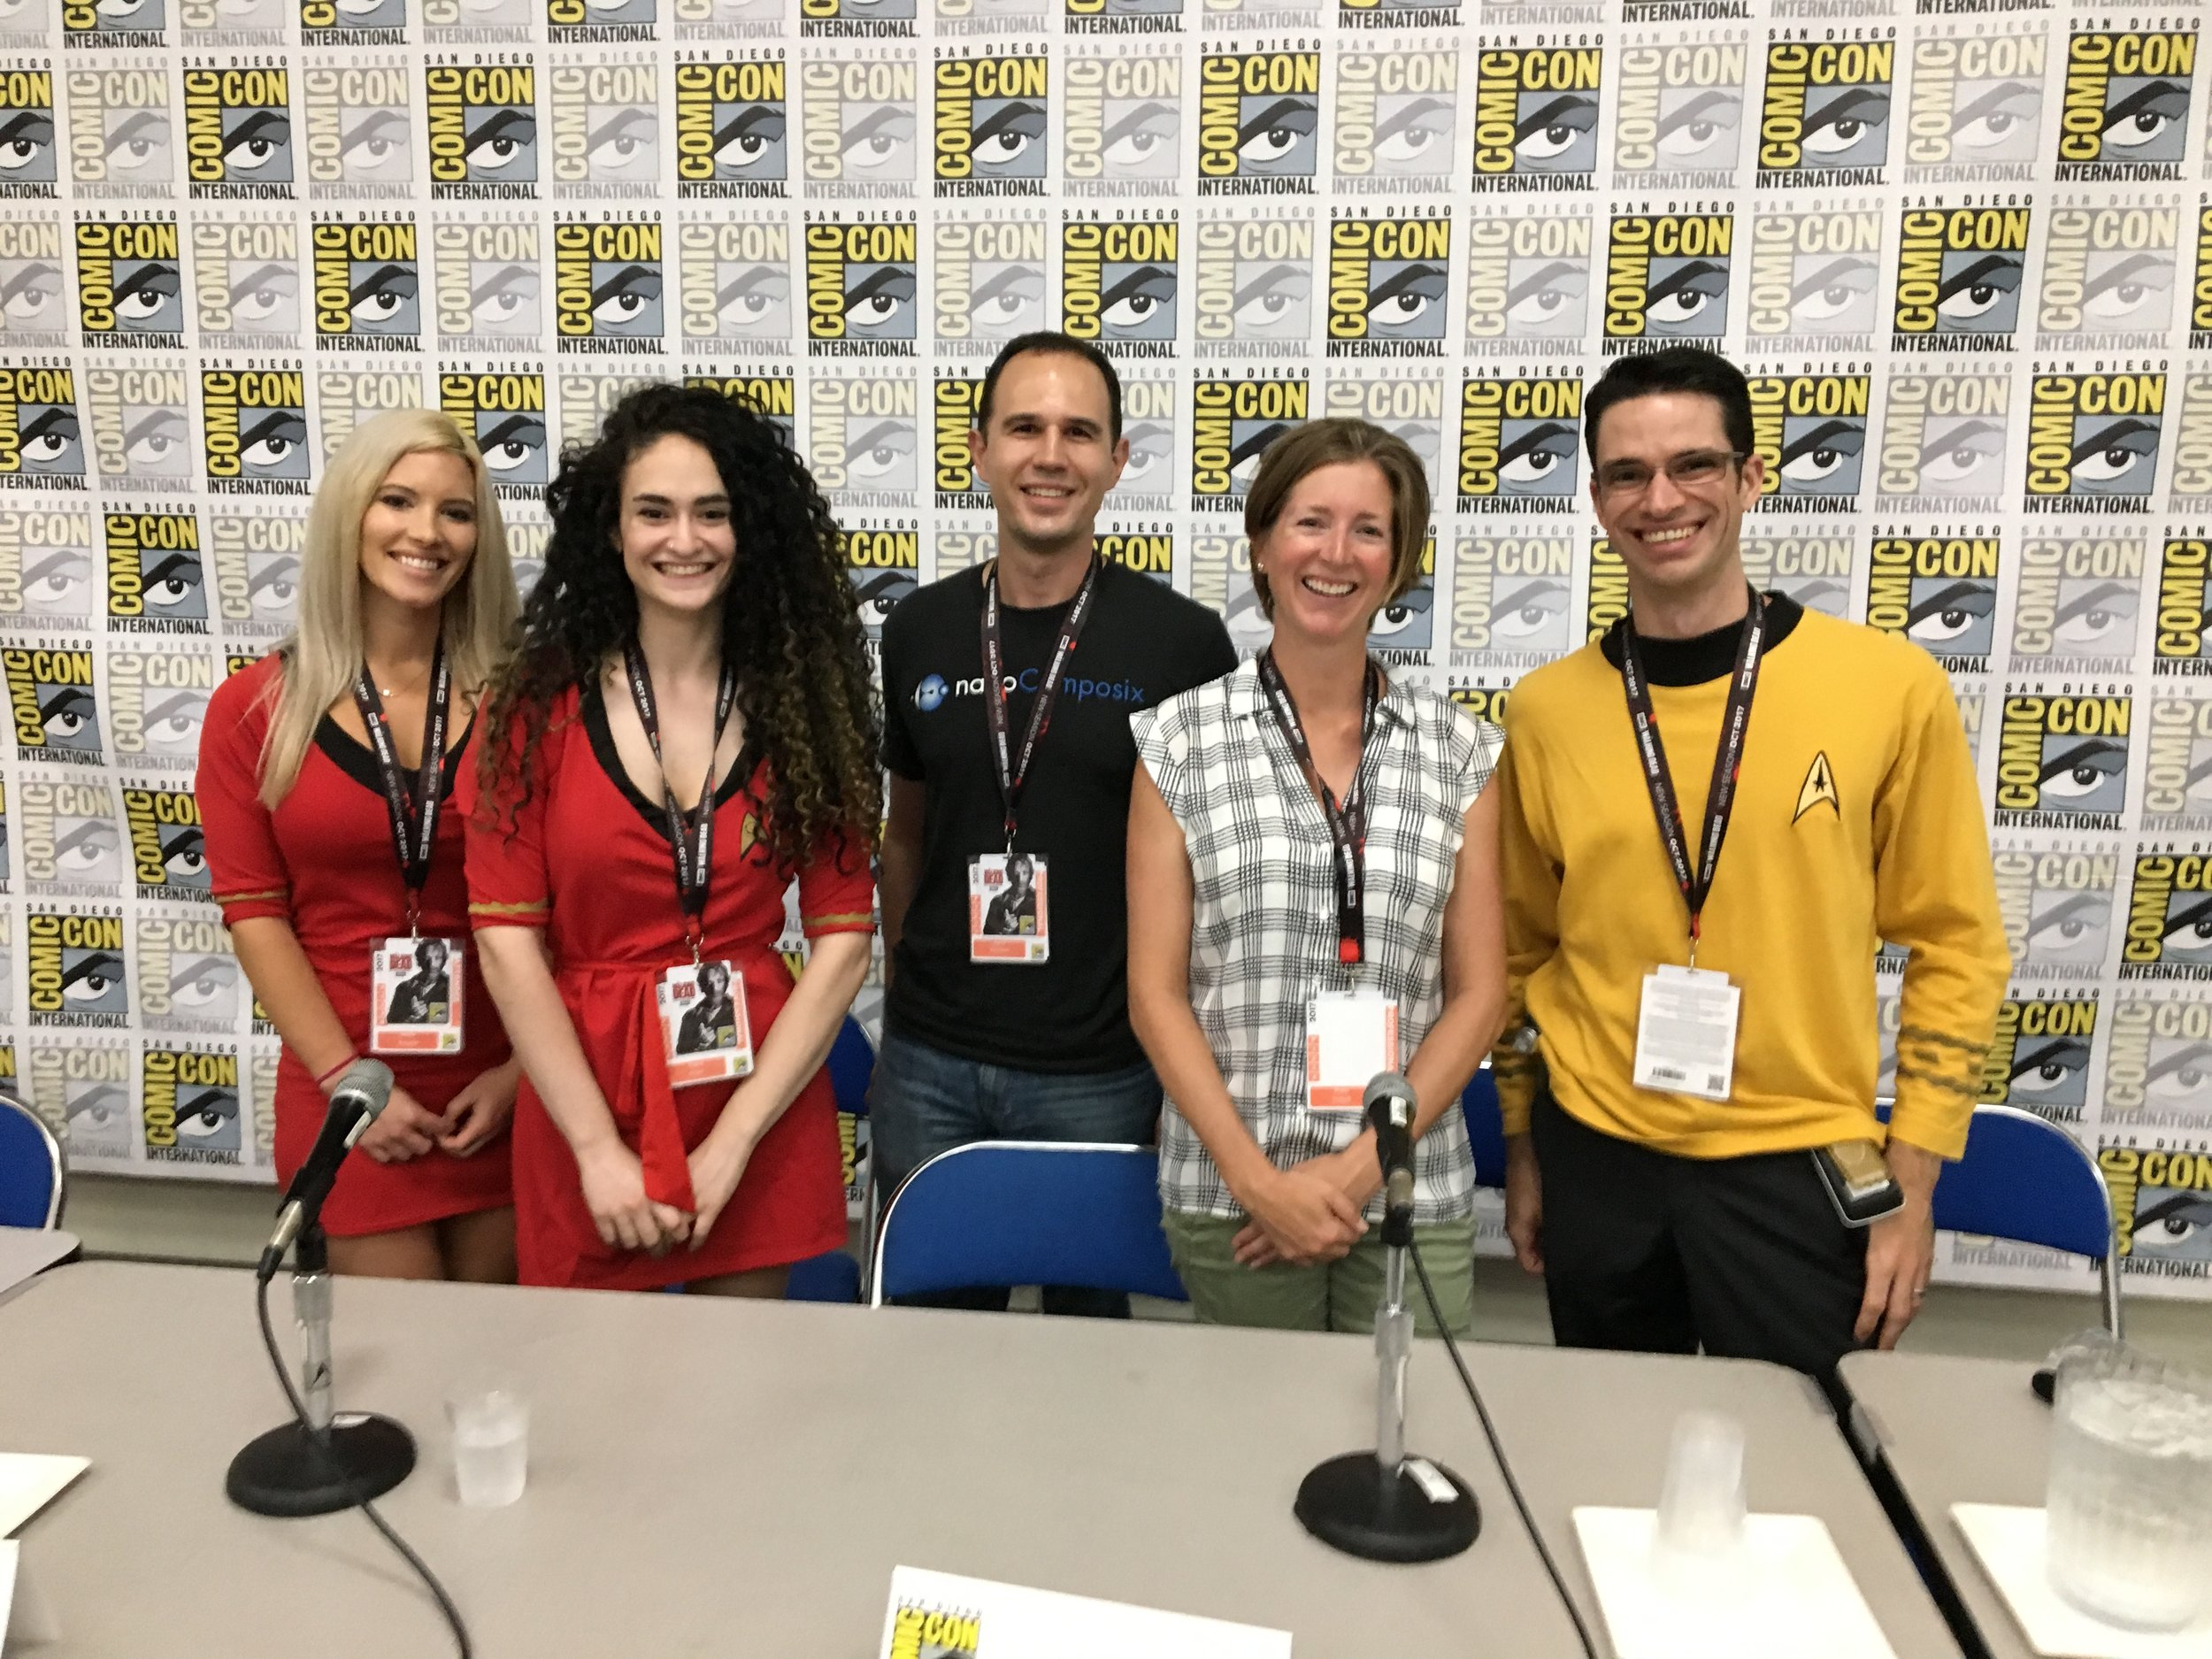 san diego comic con 2017. left to right: jeanne lemaster, chava angell, aaron saunders, robin ihnfeldt, darren lipomi.